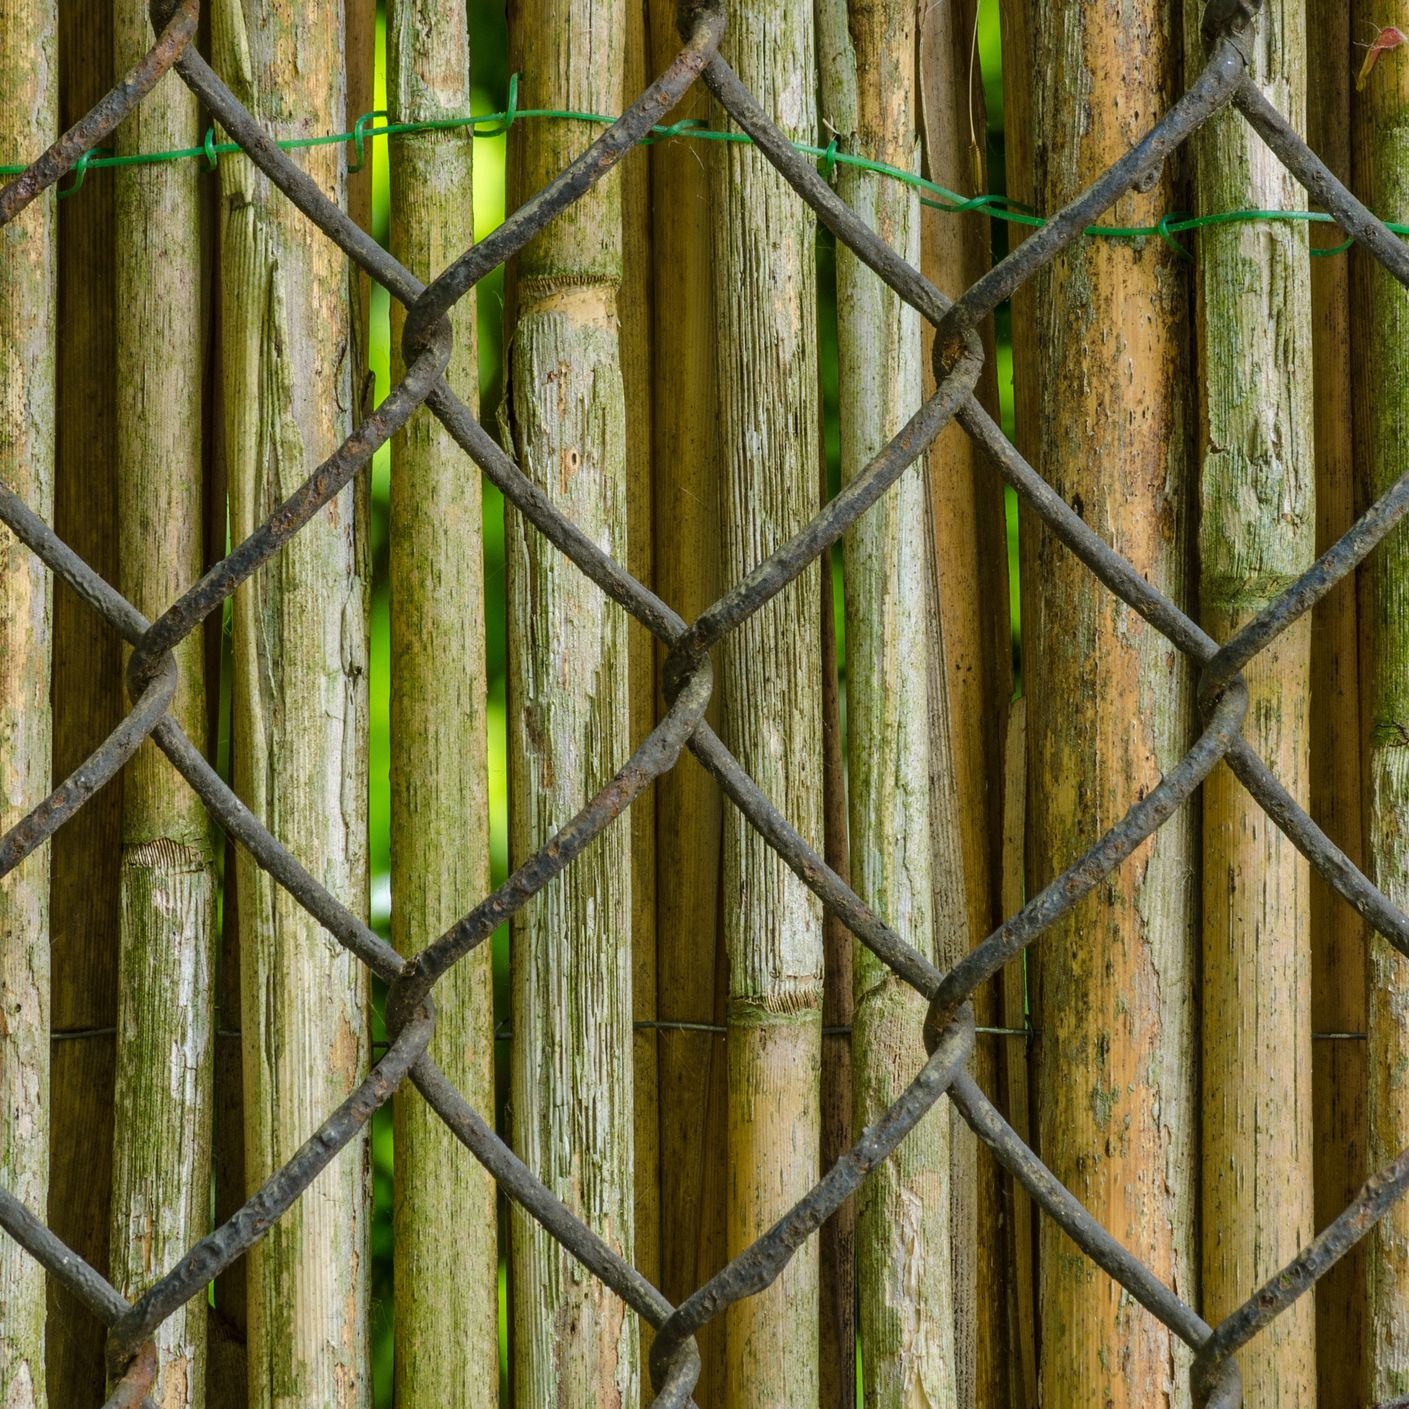 artificial green bamboo fence for decoration buy cheap.htm how to cover up a chain link fence  how to cover up a chain link fence